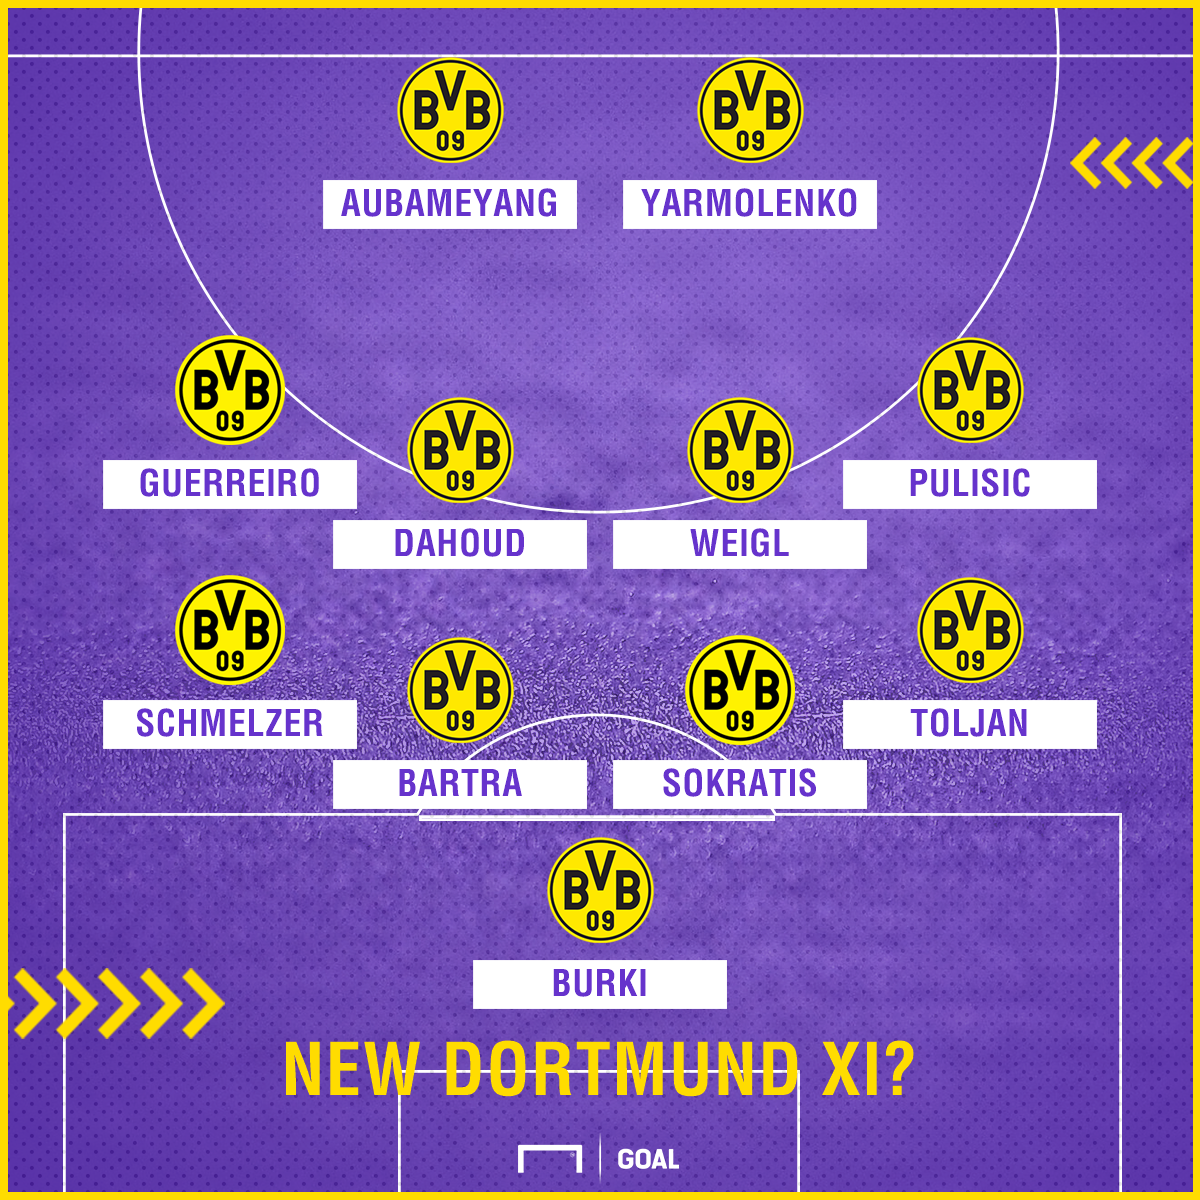 GFX Possible Dortmund XI?